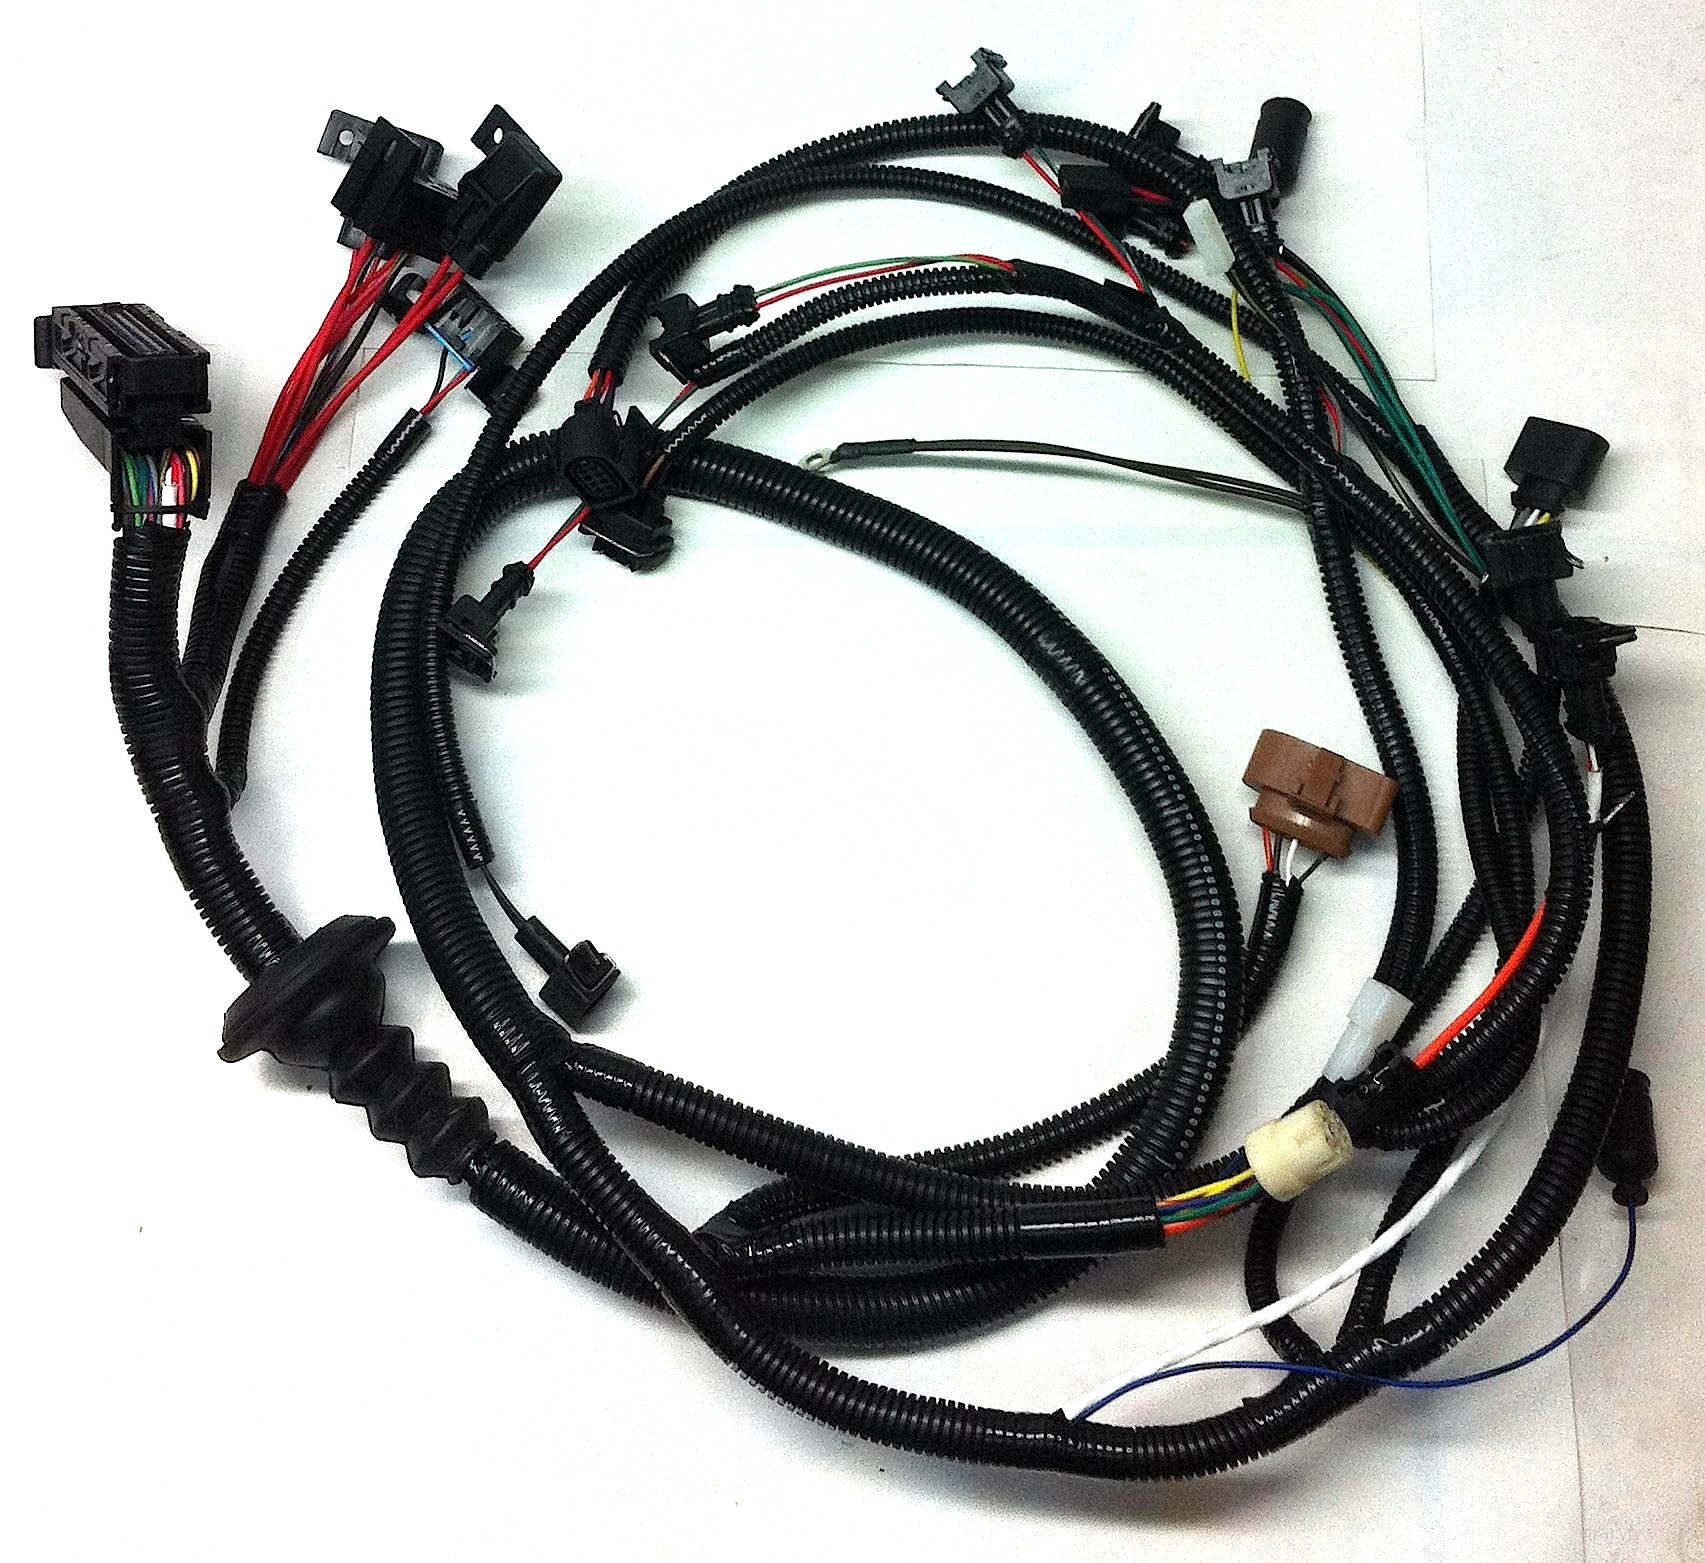 automotive wiring harness loom wiring diagram nav rh 4 jfgfde ti oe de automotive wiring harness manufacturers in chennai automotive wiring harness manufacturers in bangalore